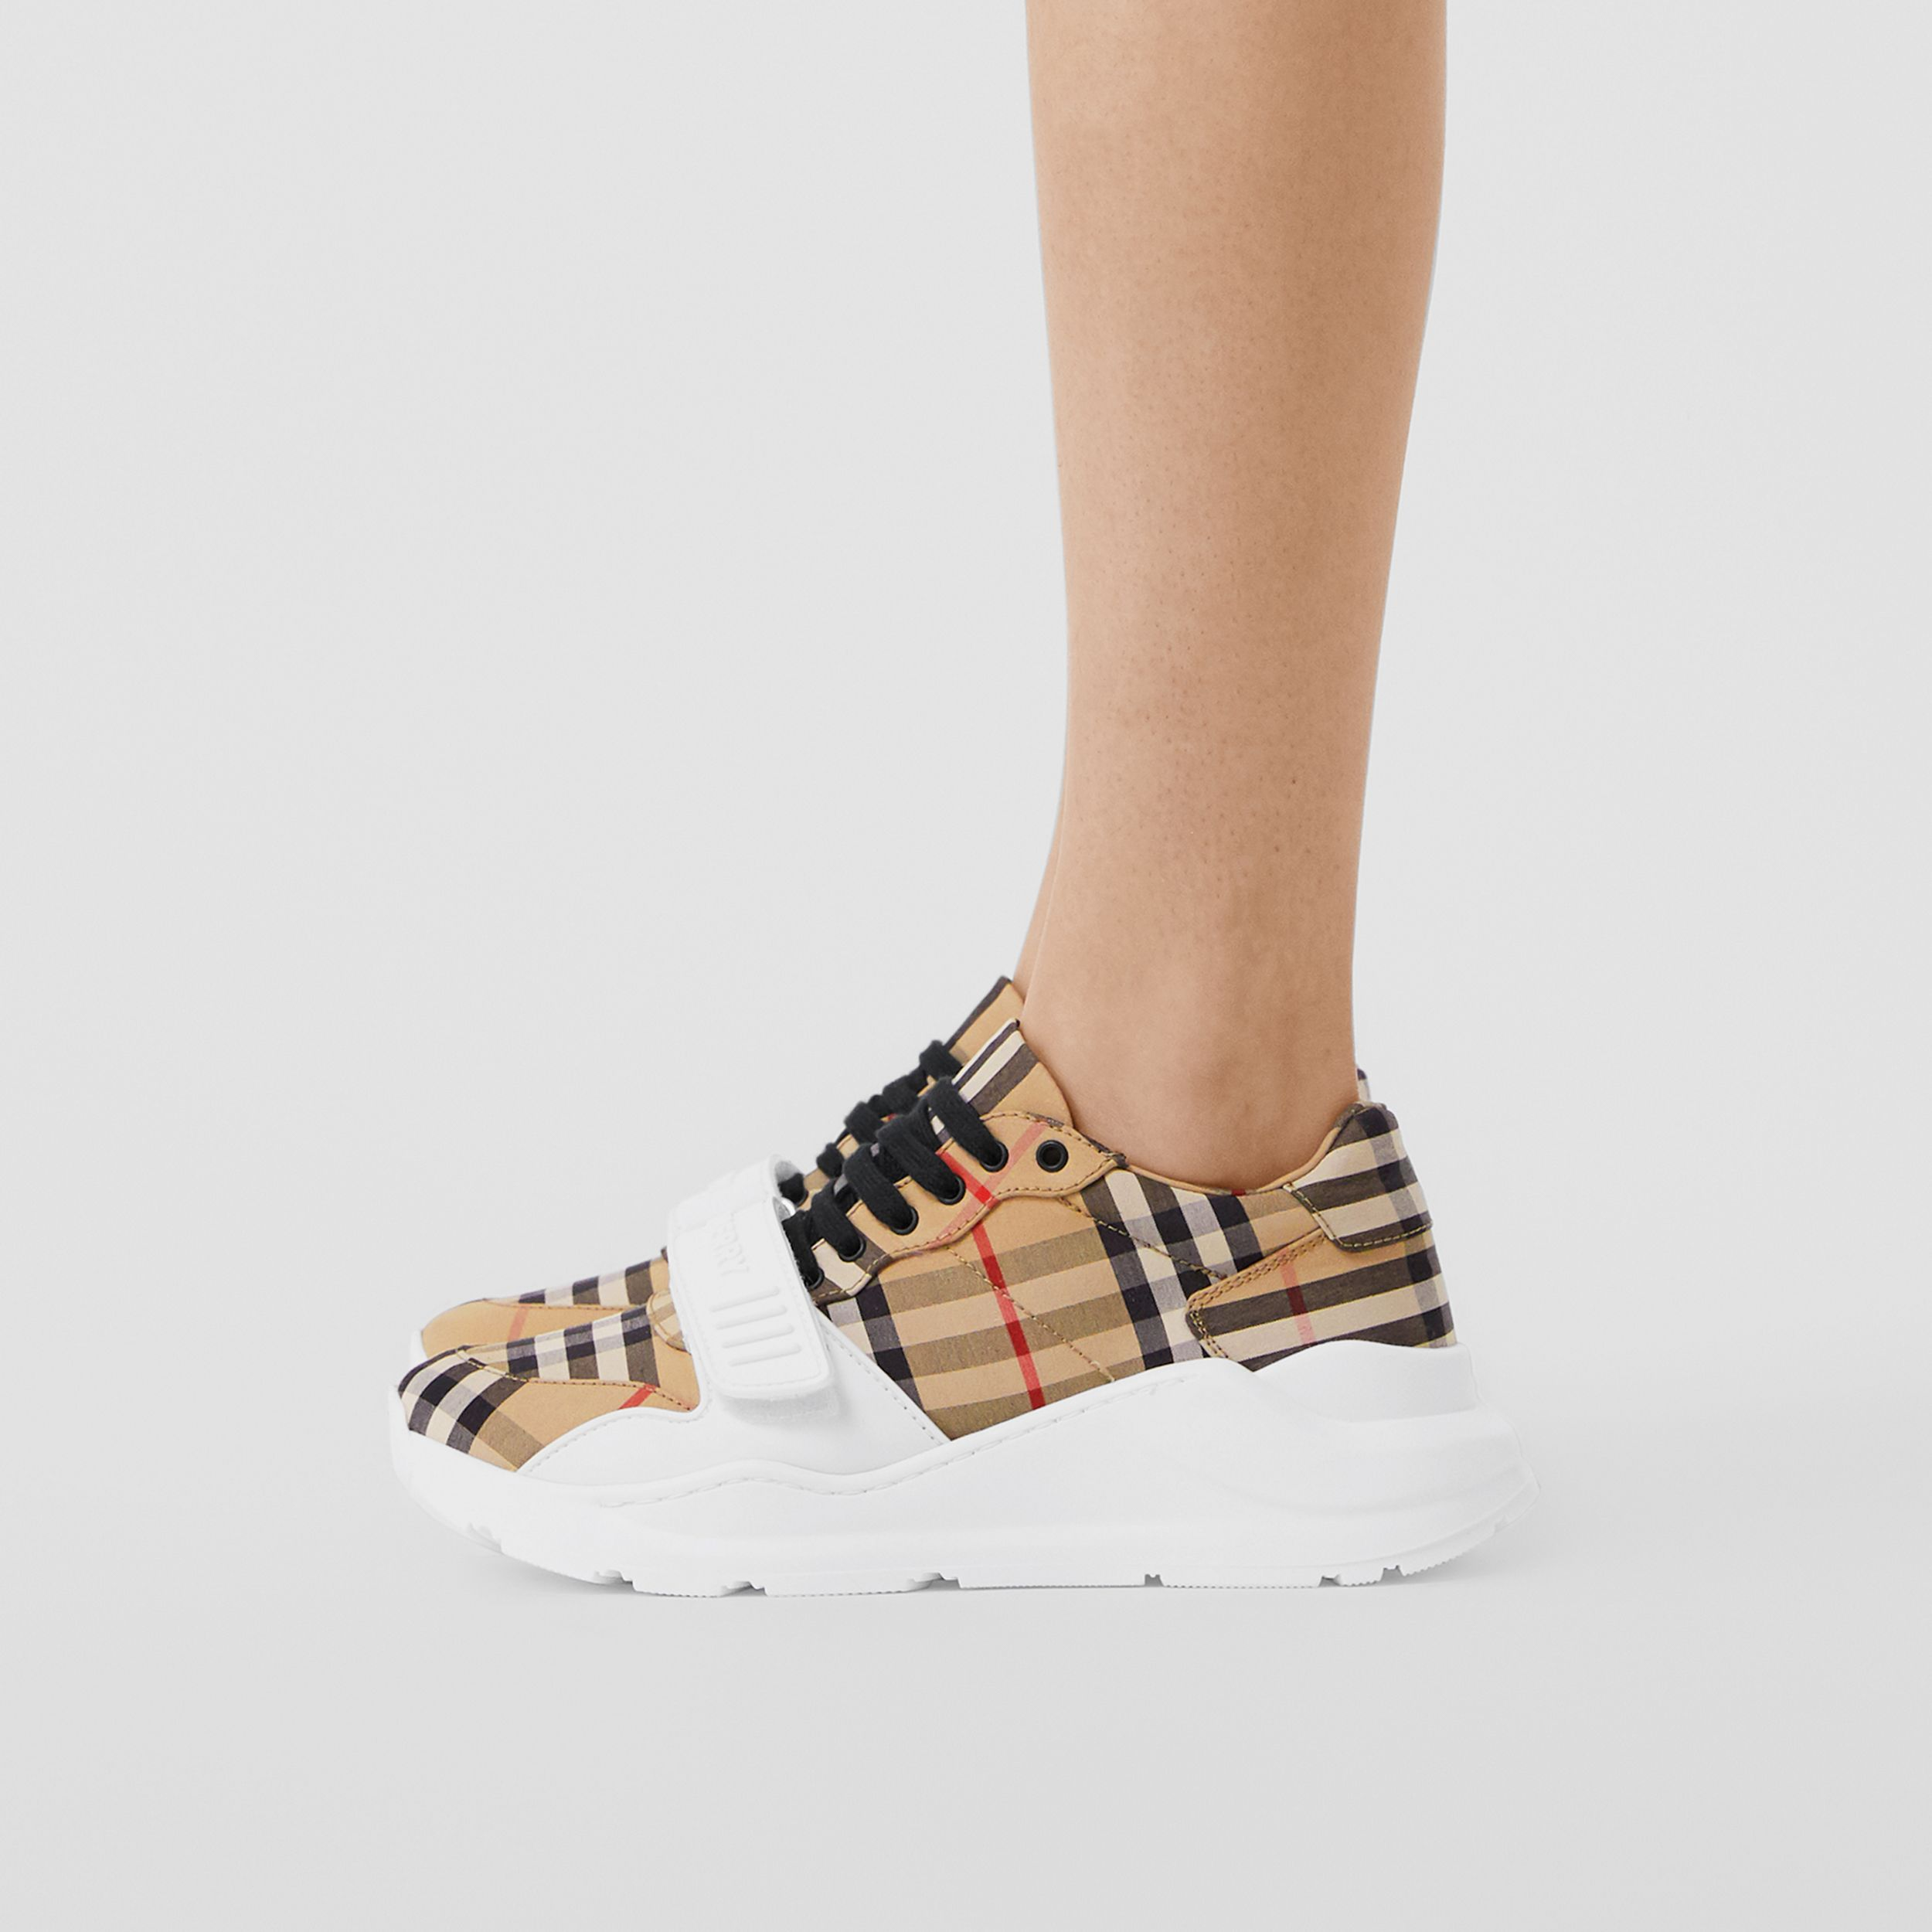 Vintage Check Cotton Sneakers in Archive Beige - Women | Burberry Australia - 3